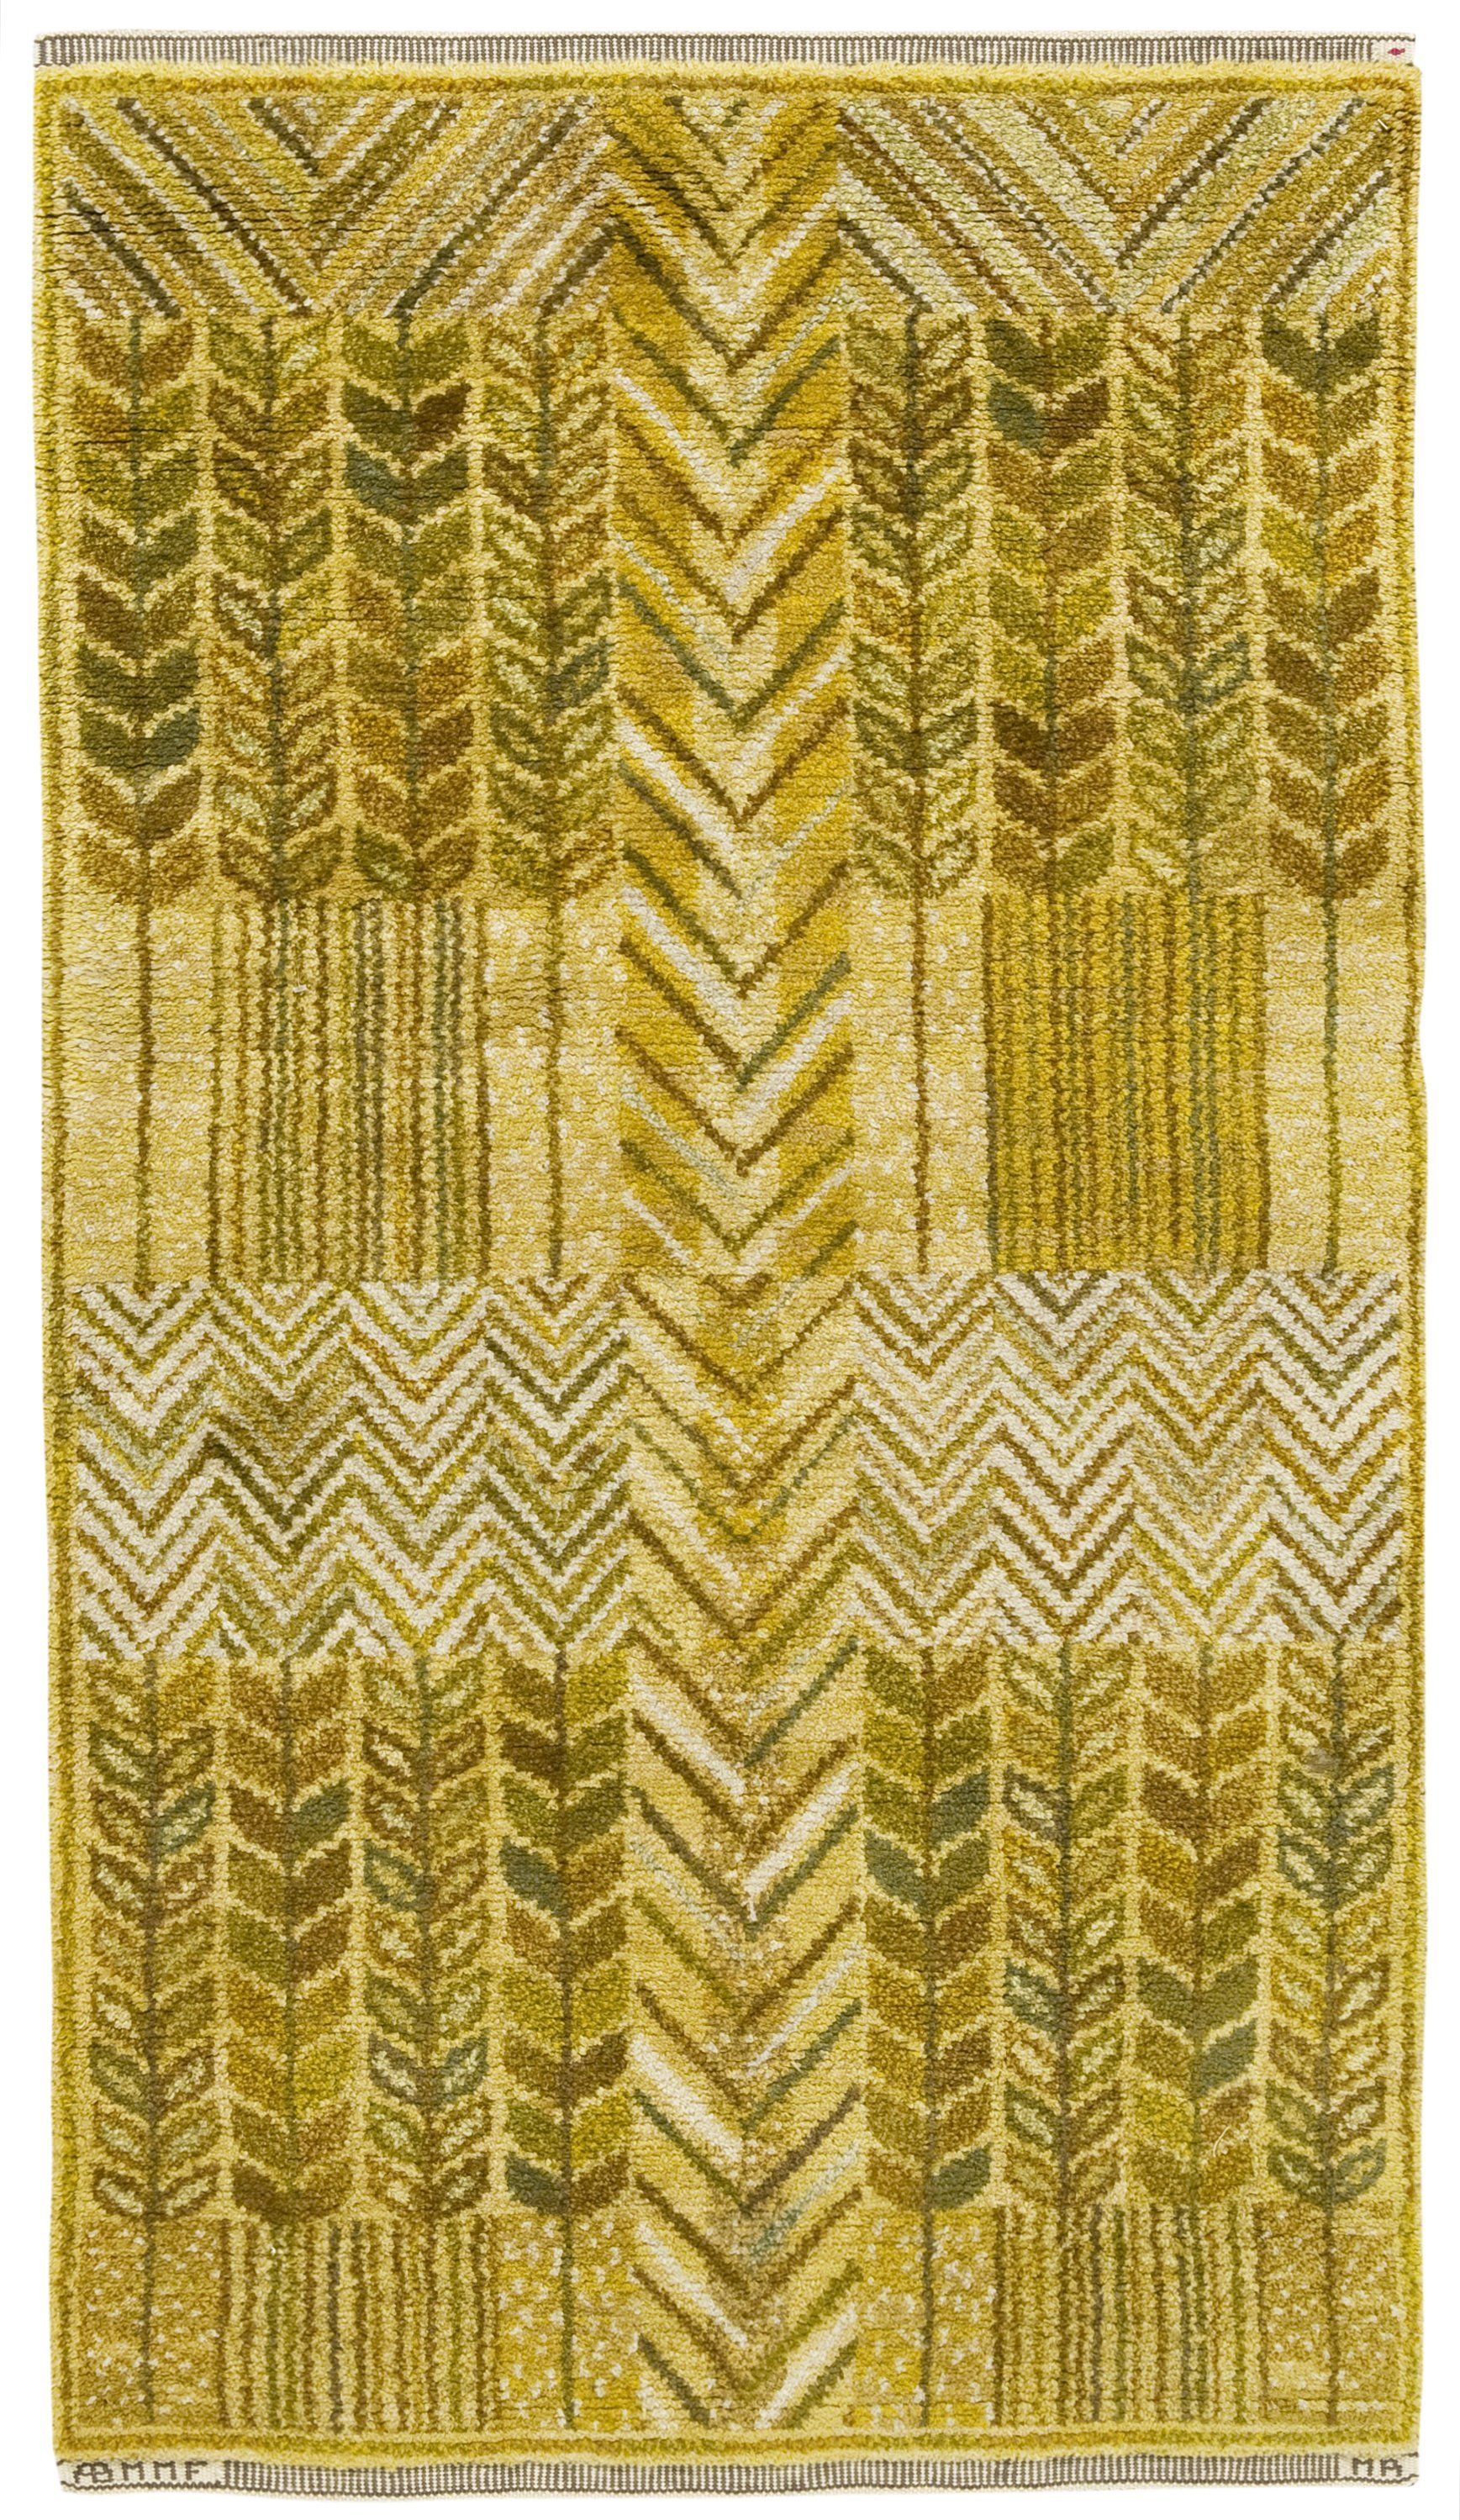 Marta Maas Fjetterstrom And Marianne Richter Flat Weave Barley And Hops Wool Carpet 1960 Tapestry Coverlet Swedish Rug Scandinavian Textiles